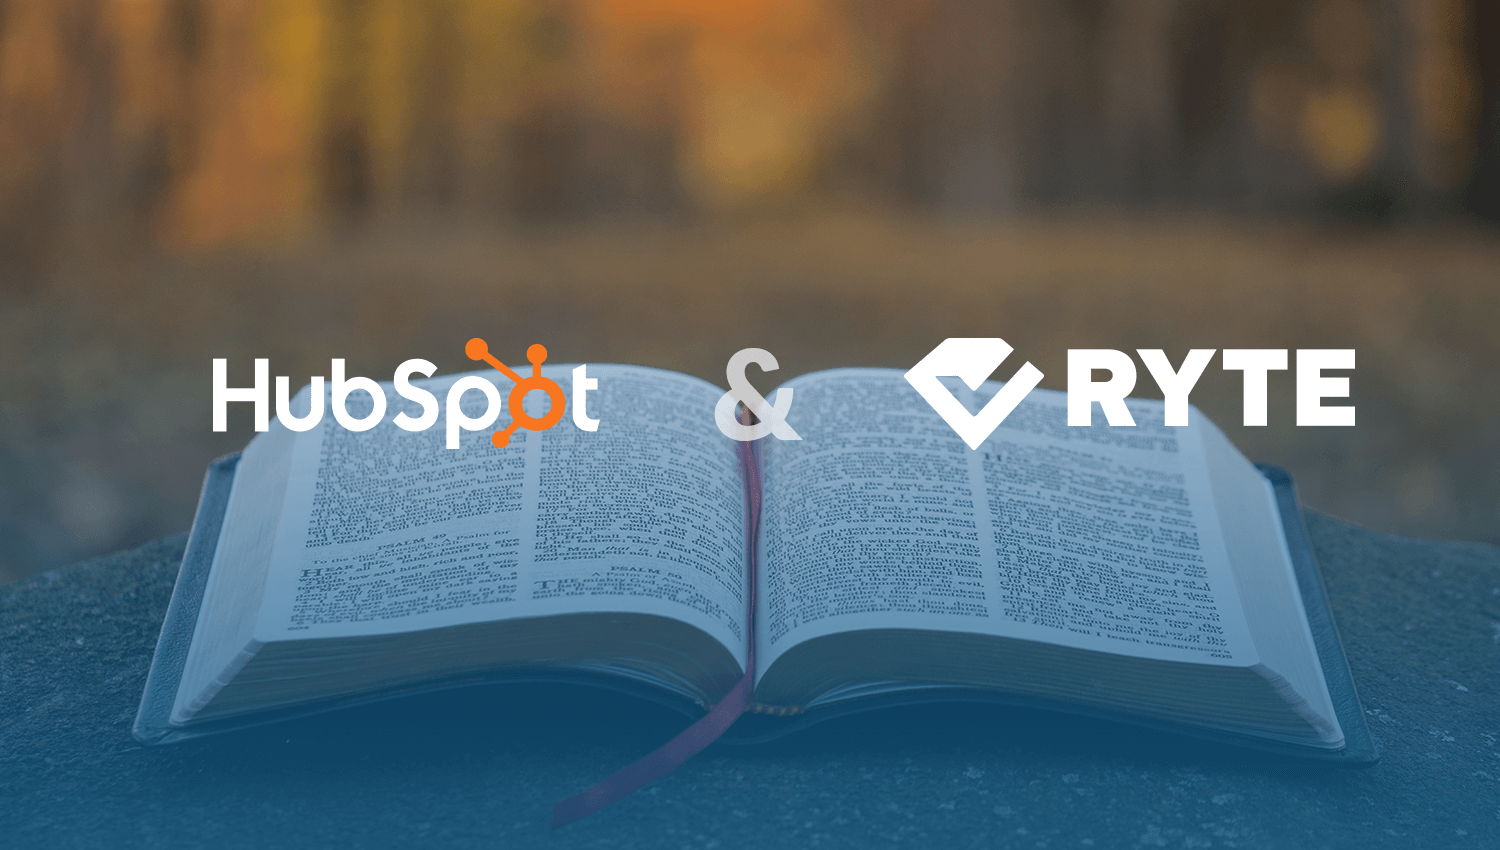 SEO-Audit-Ryte-Hubspsot-Ebook-1 SEO Audit